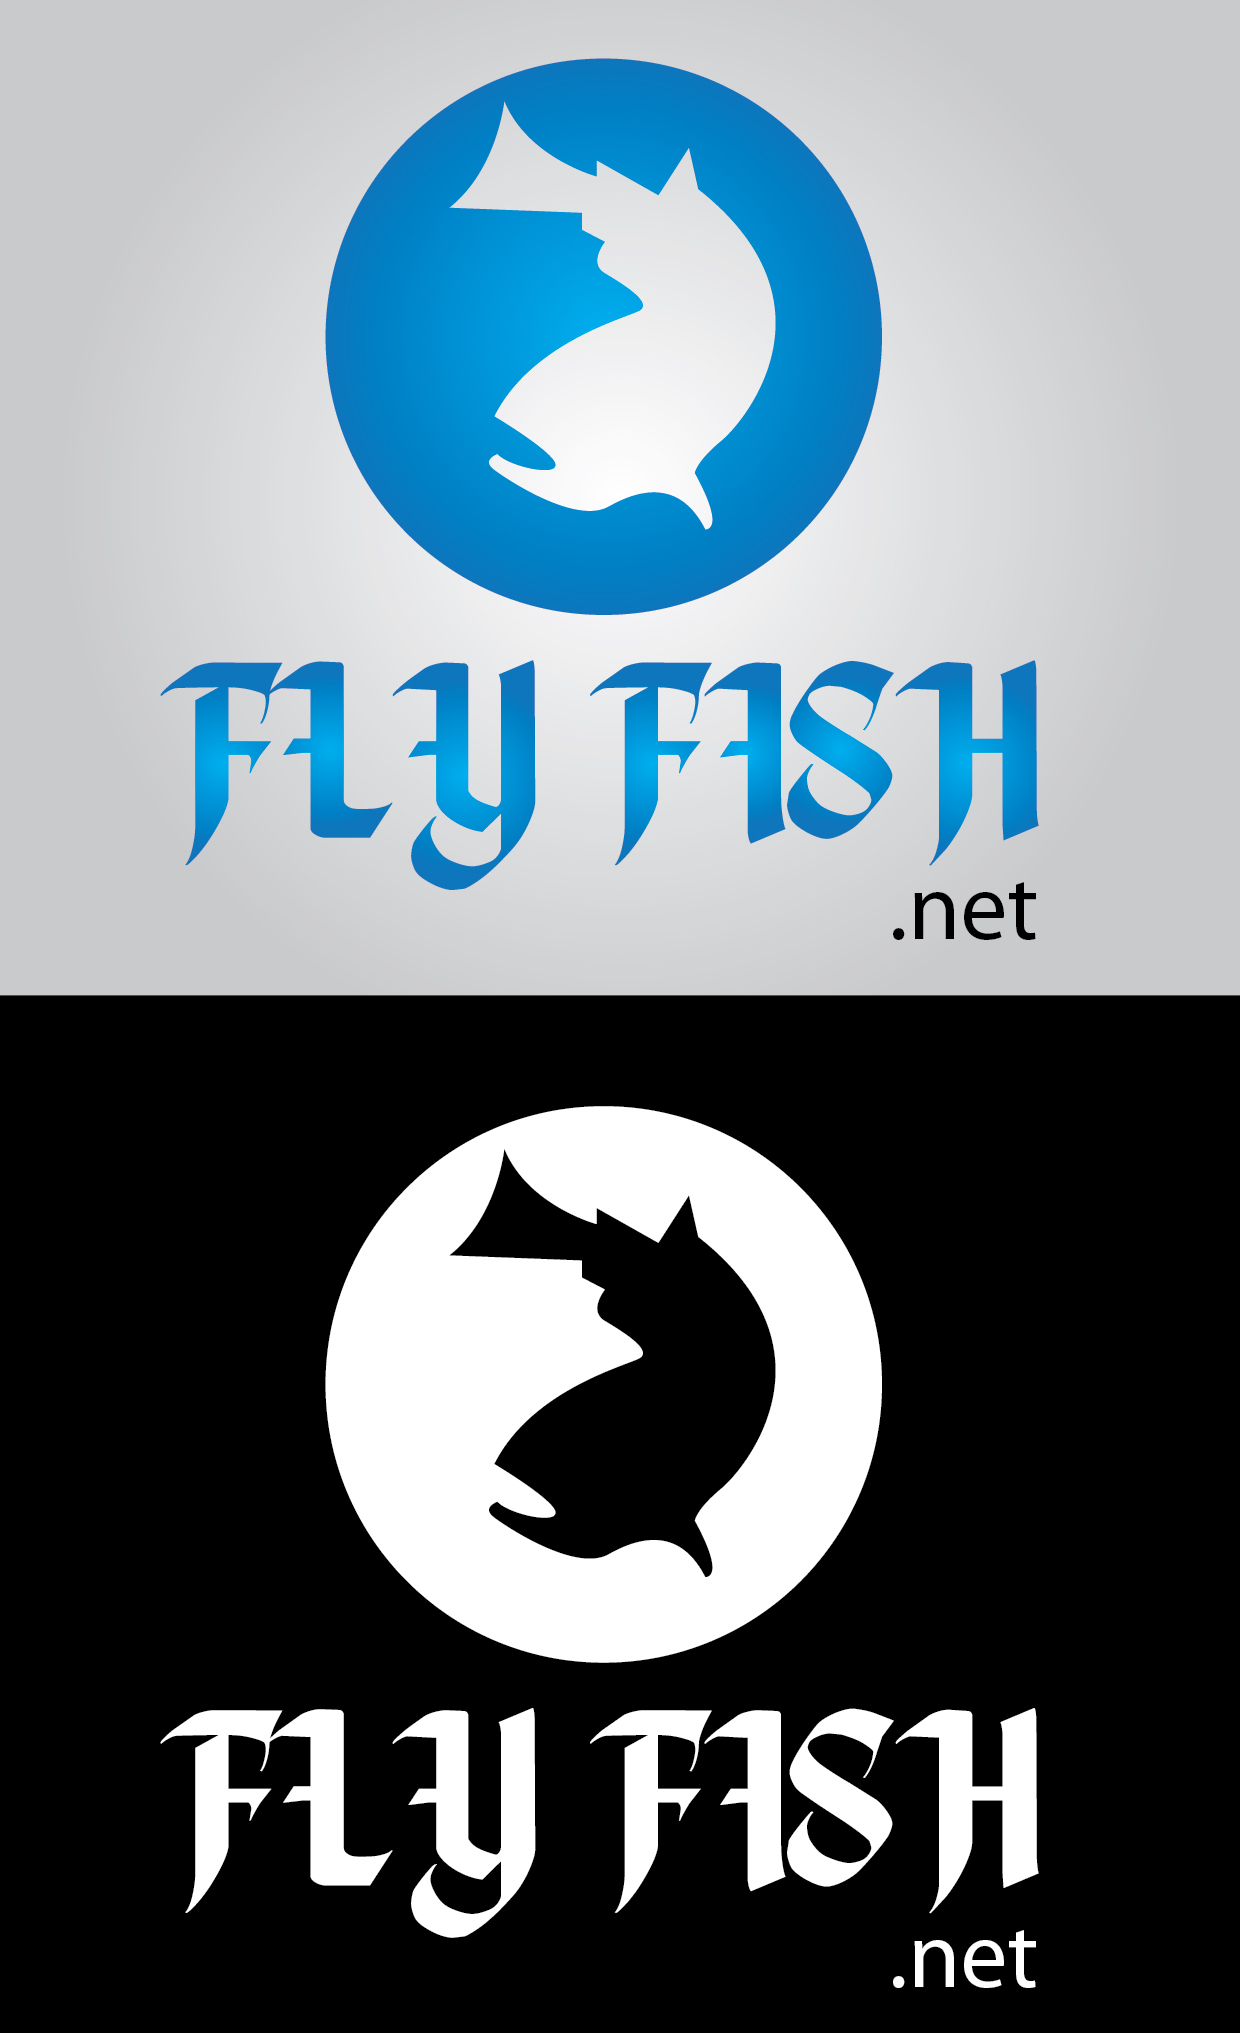 Logo Design by mediaproductionart - Entry No. 77 in the Logo Design Contest Artistic Logo Design for fly-fishing.net.